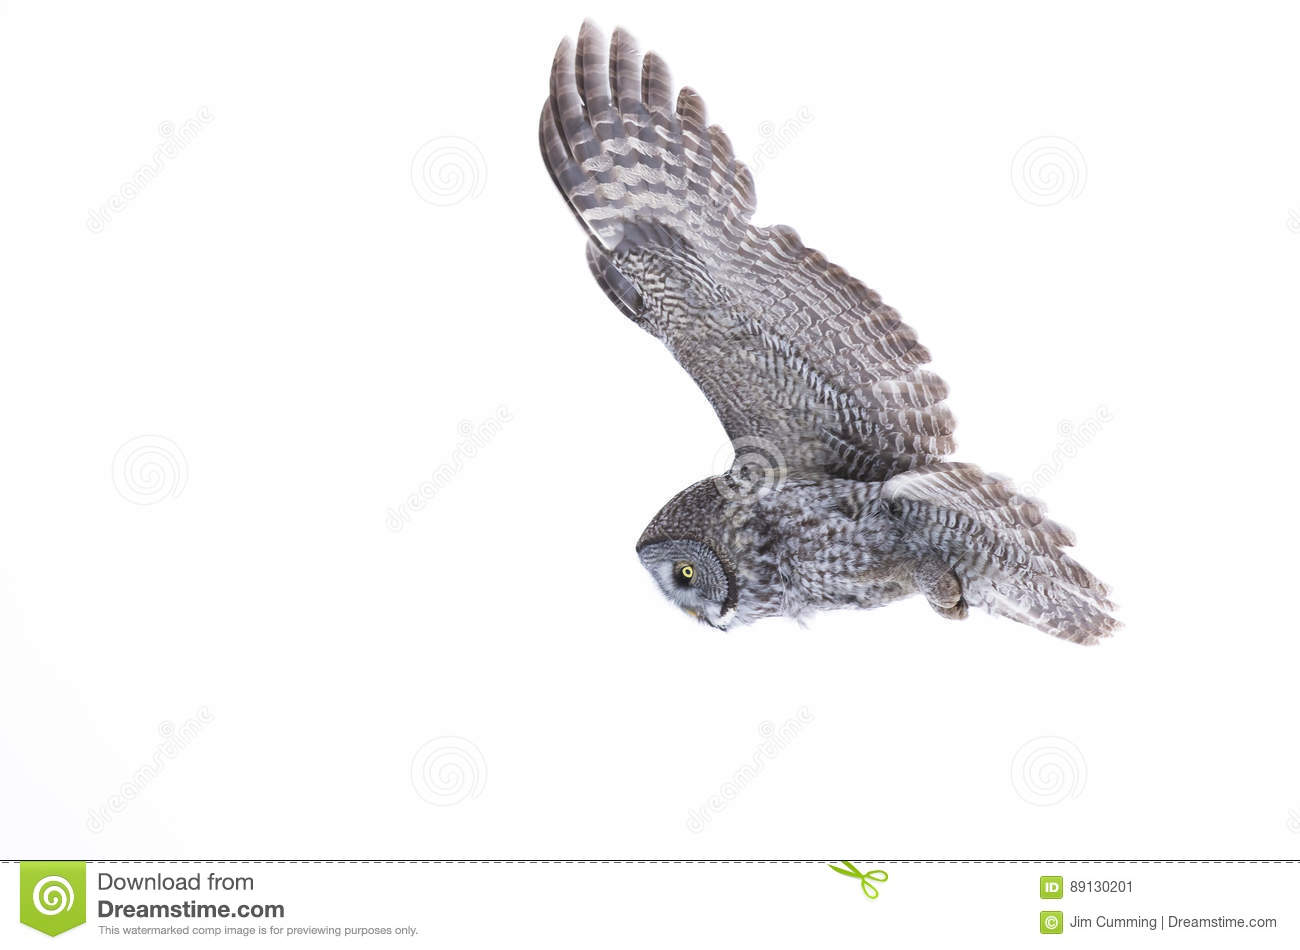 Great grey owl (Strix nebulosa) isolated against a white background hunting over a snow covered field in Canada